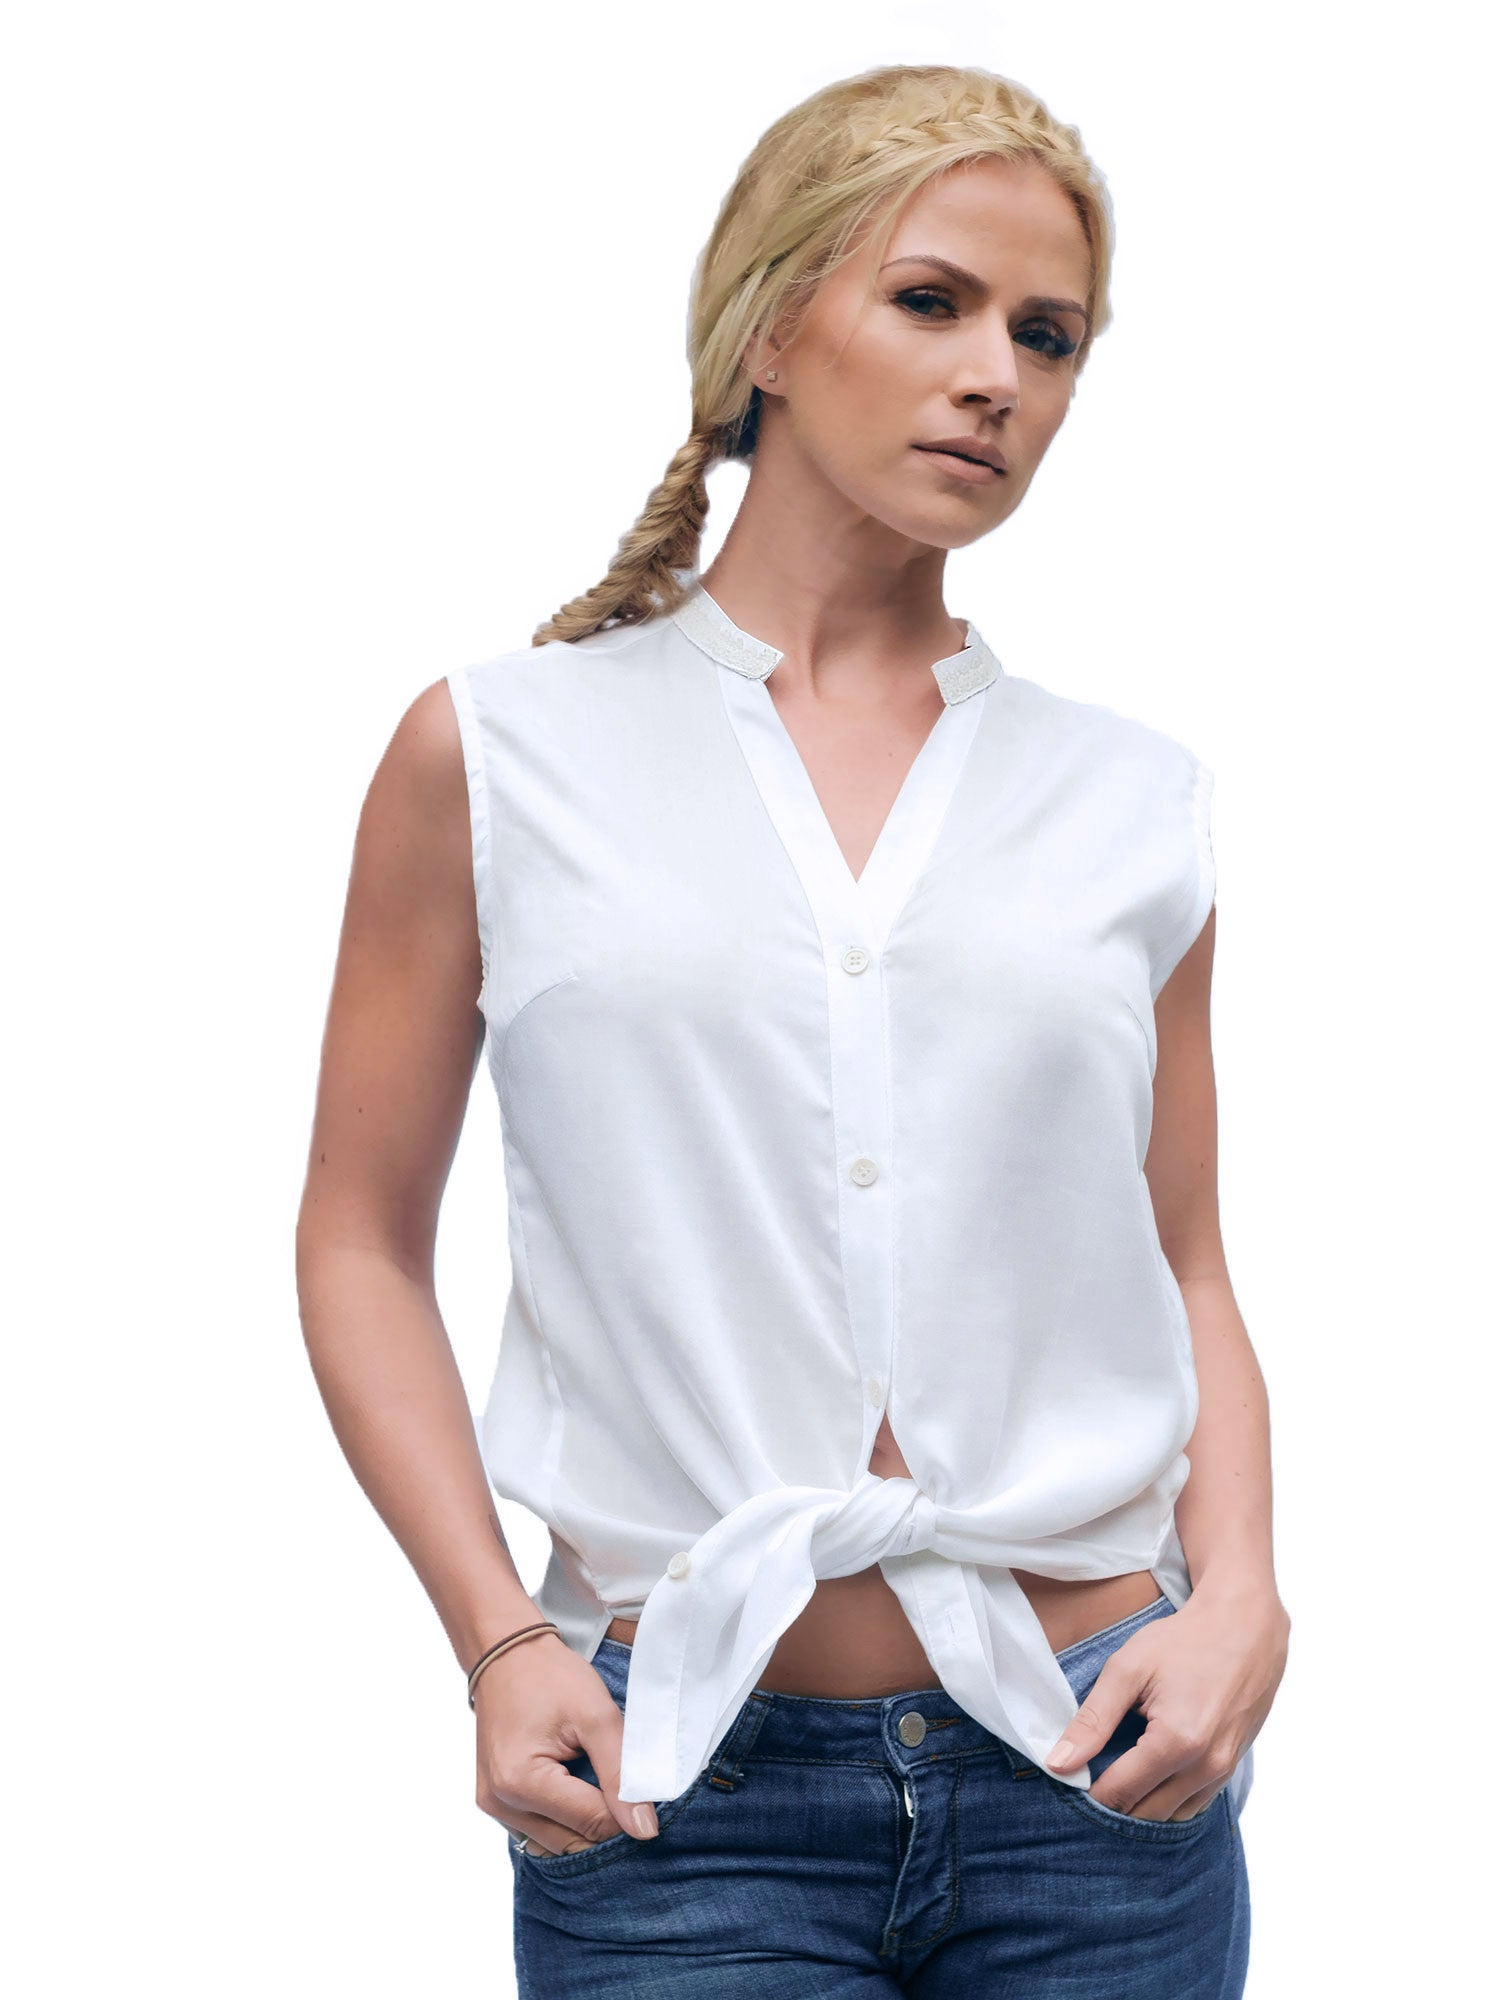 KAER Bamboo Blouse (White & Black)